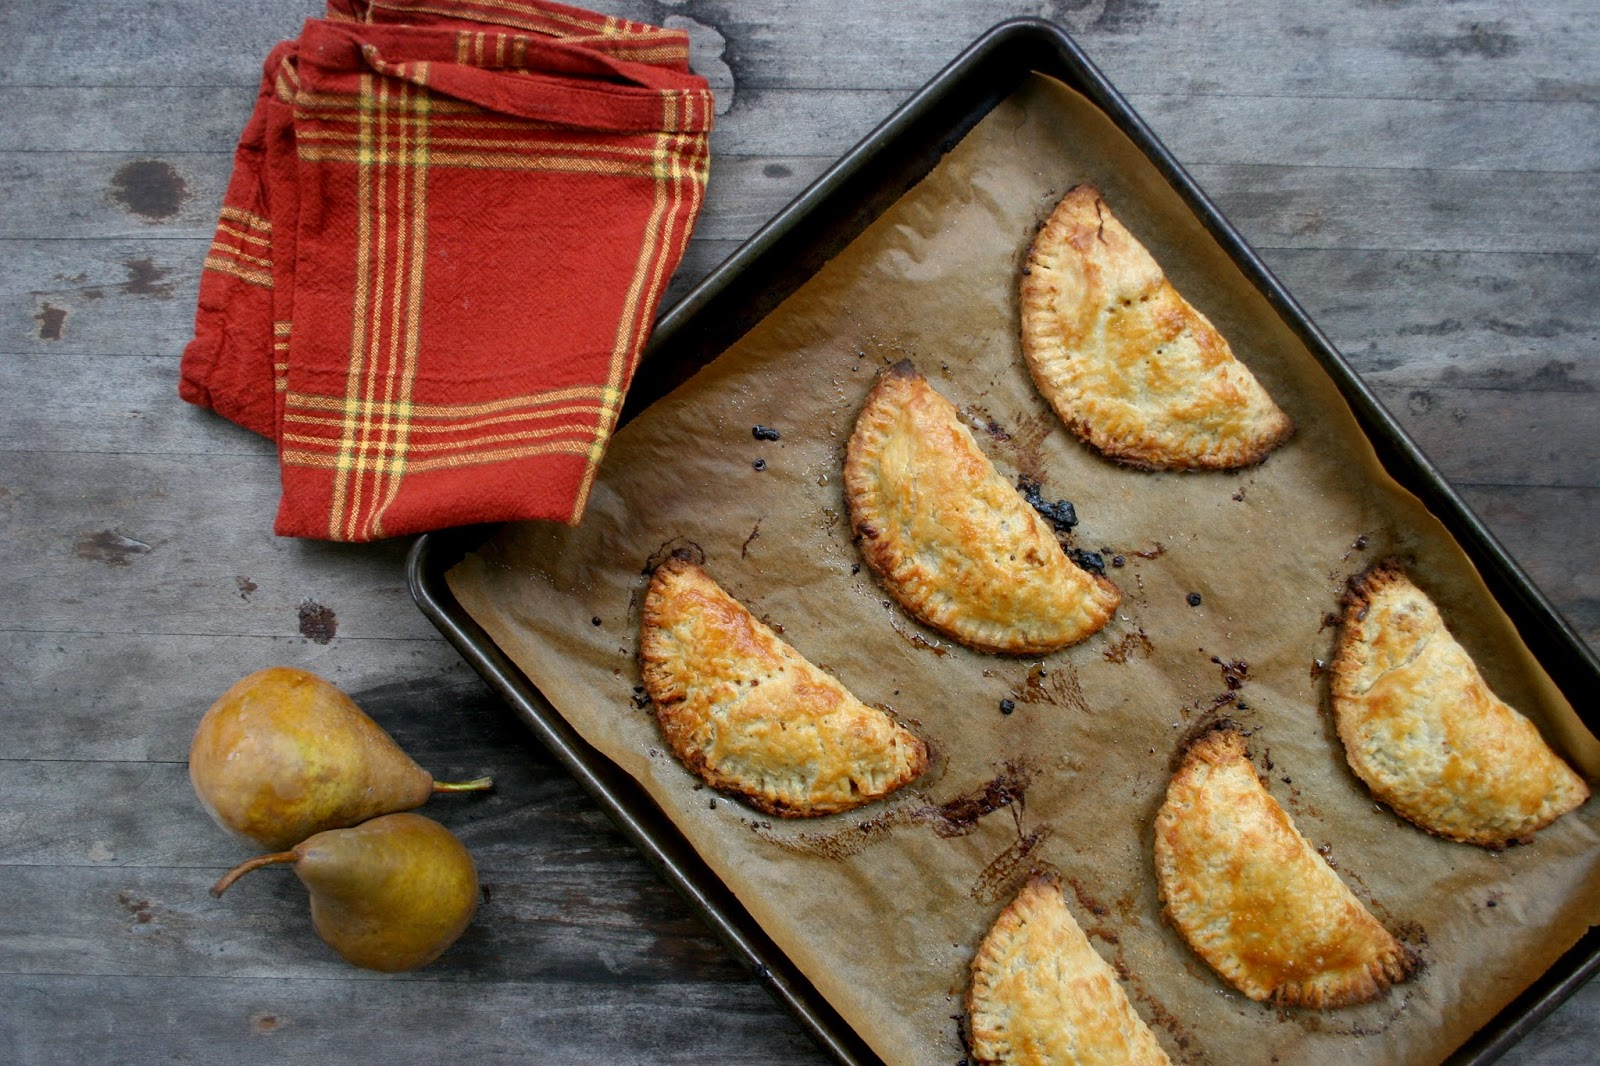 Pear, Gruyere & Caramelized Onion Hand Pies